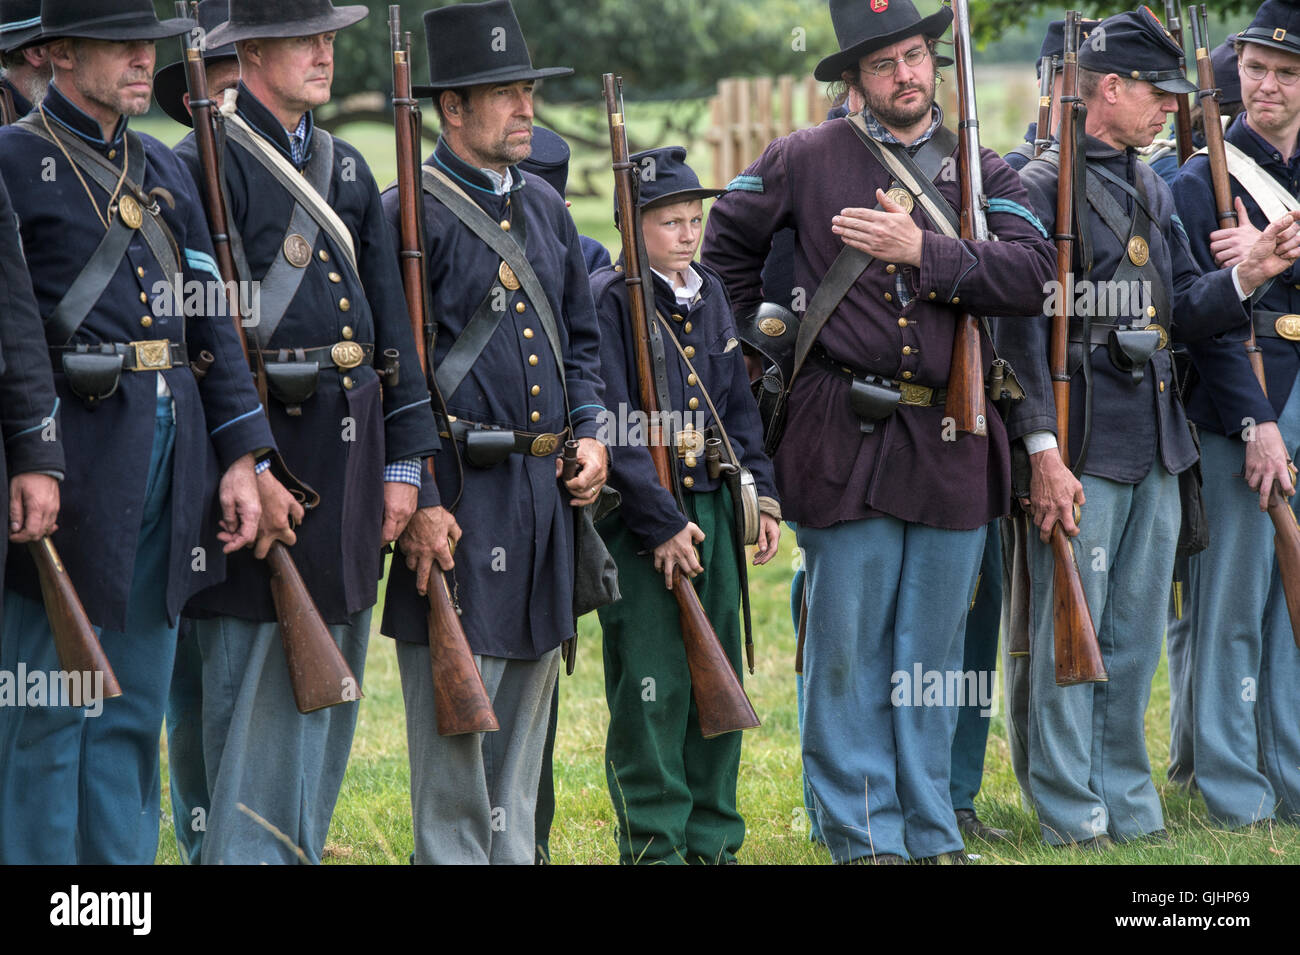 Reenactment Of The American Civil War Stock Photos